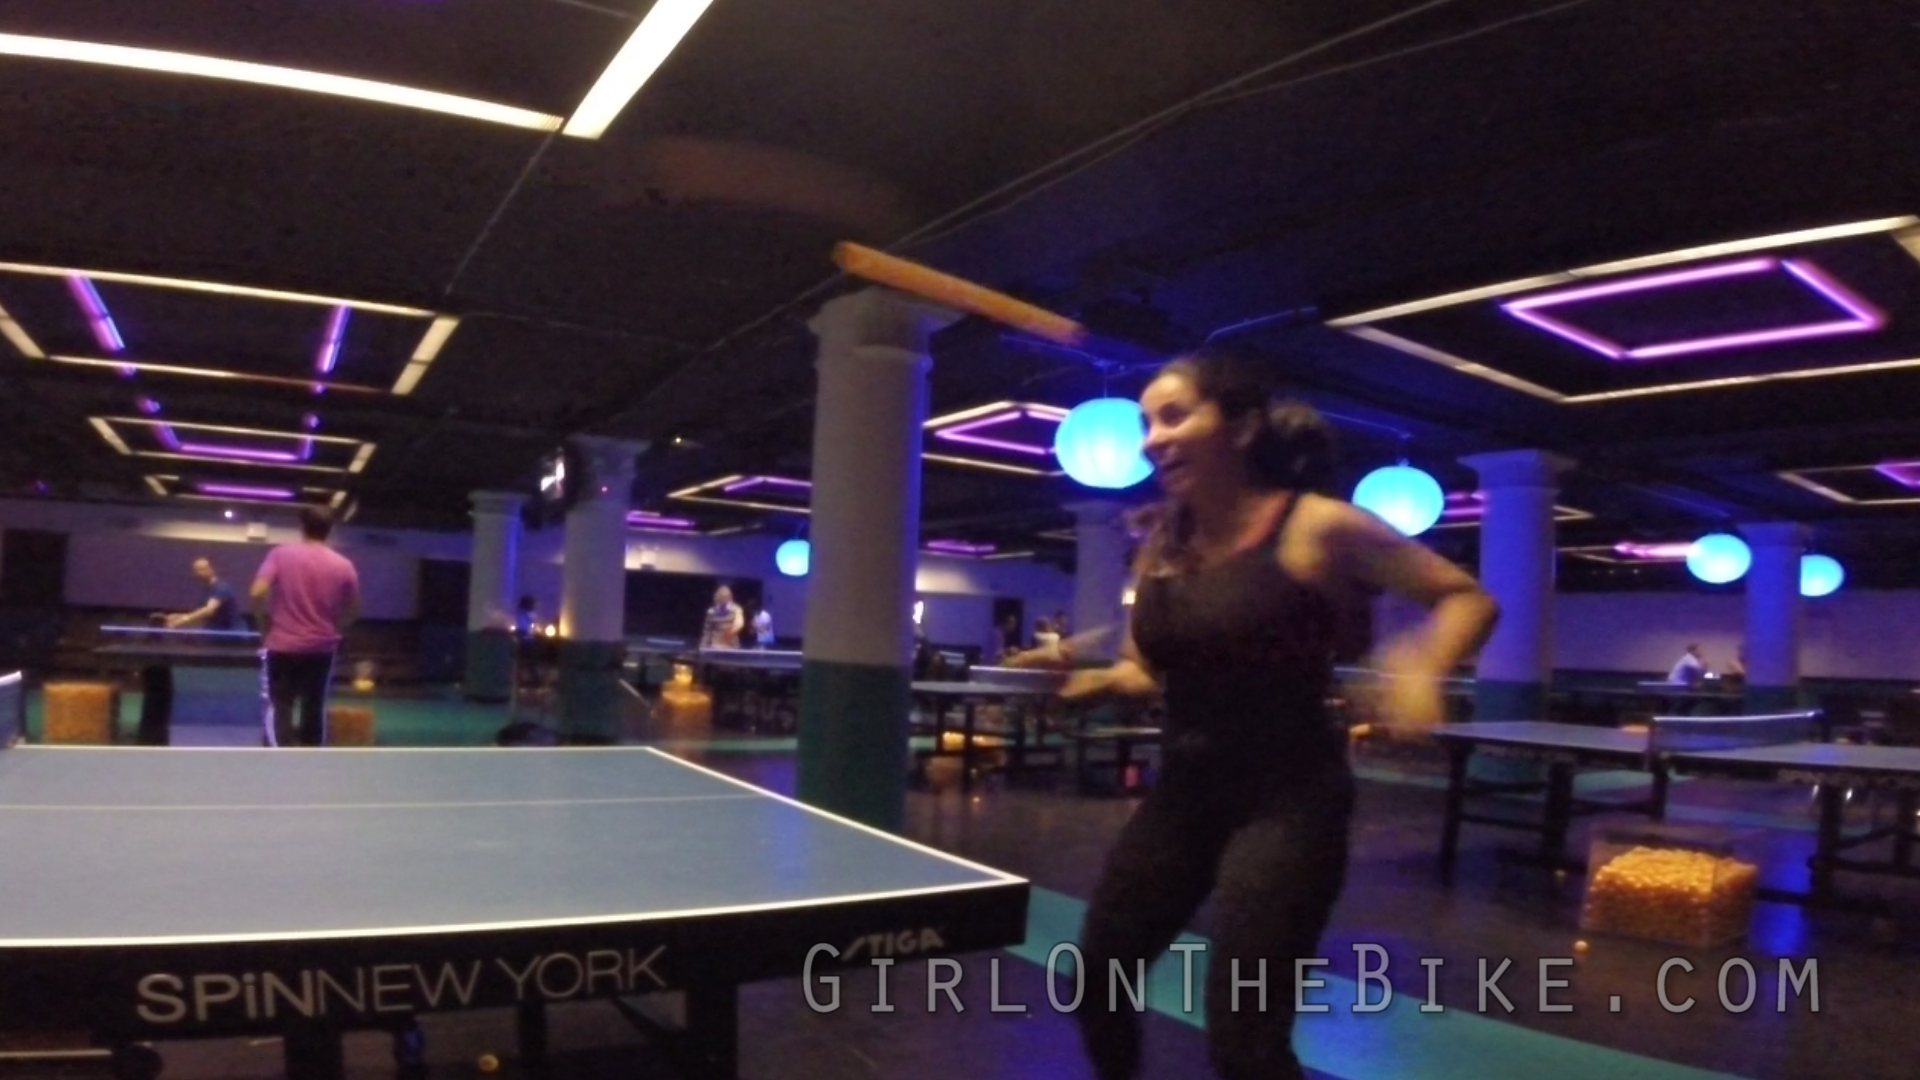 If Girl On The Bike Plays PingPong…